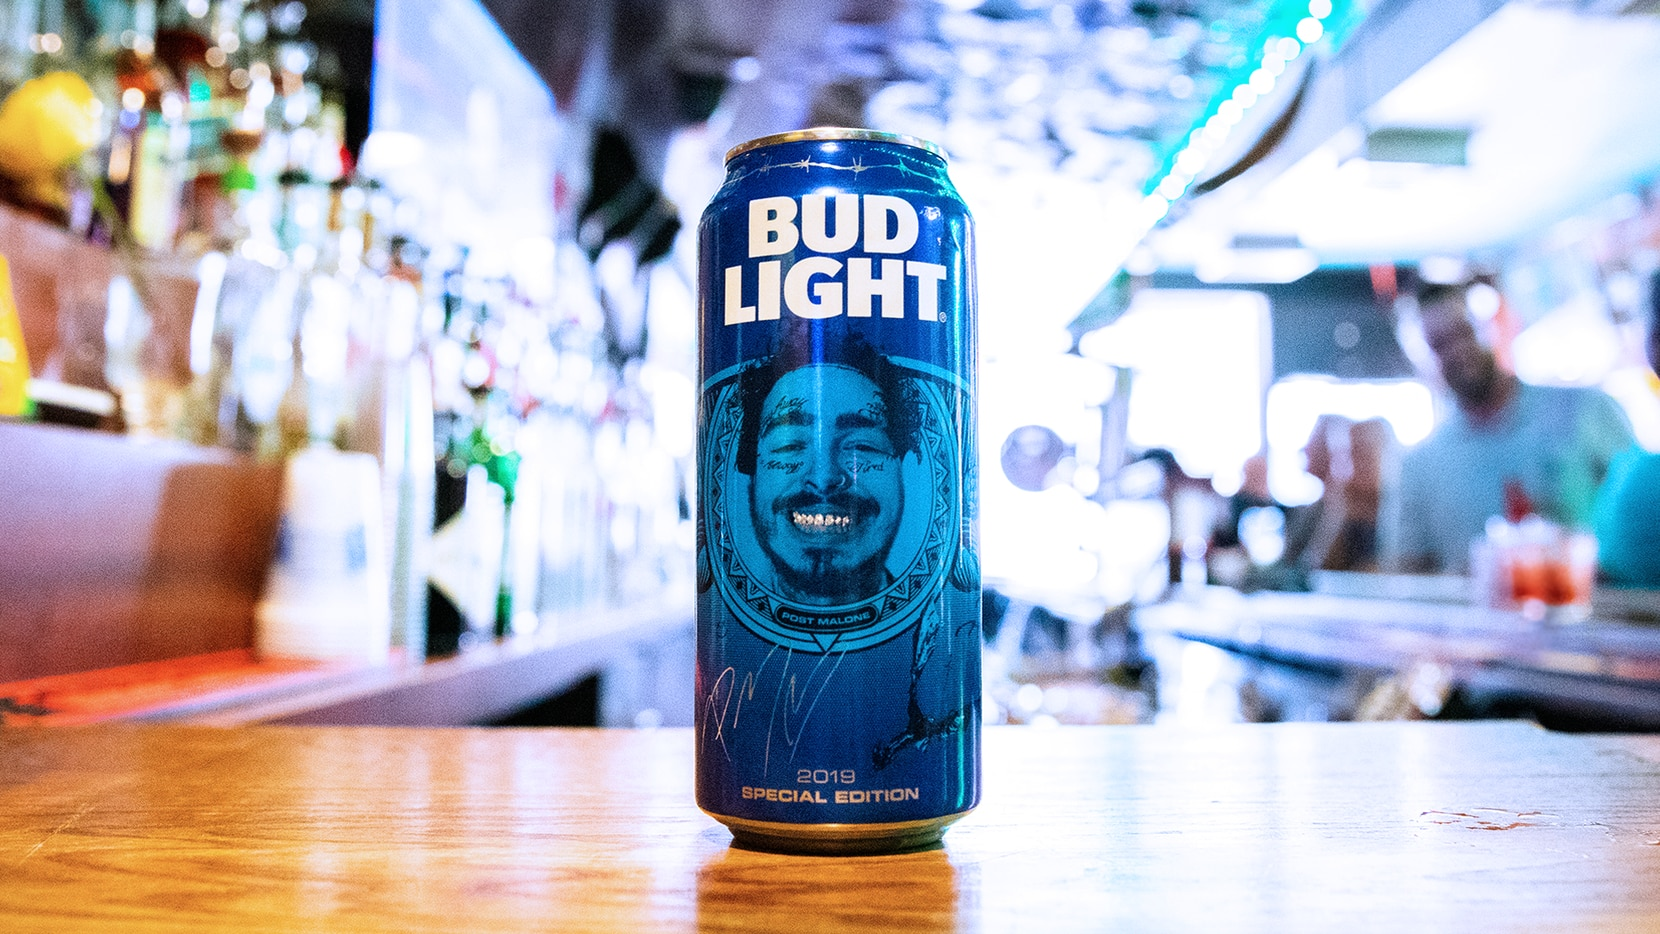 Post Malone's face is printed on Bud Light cans in 2019.